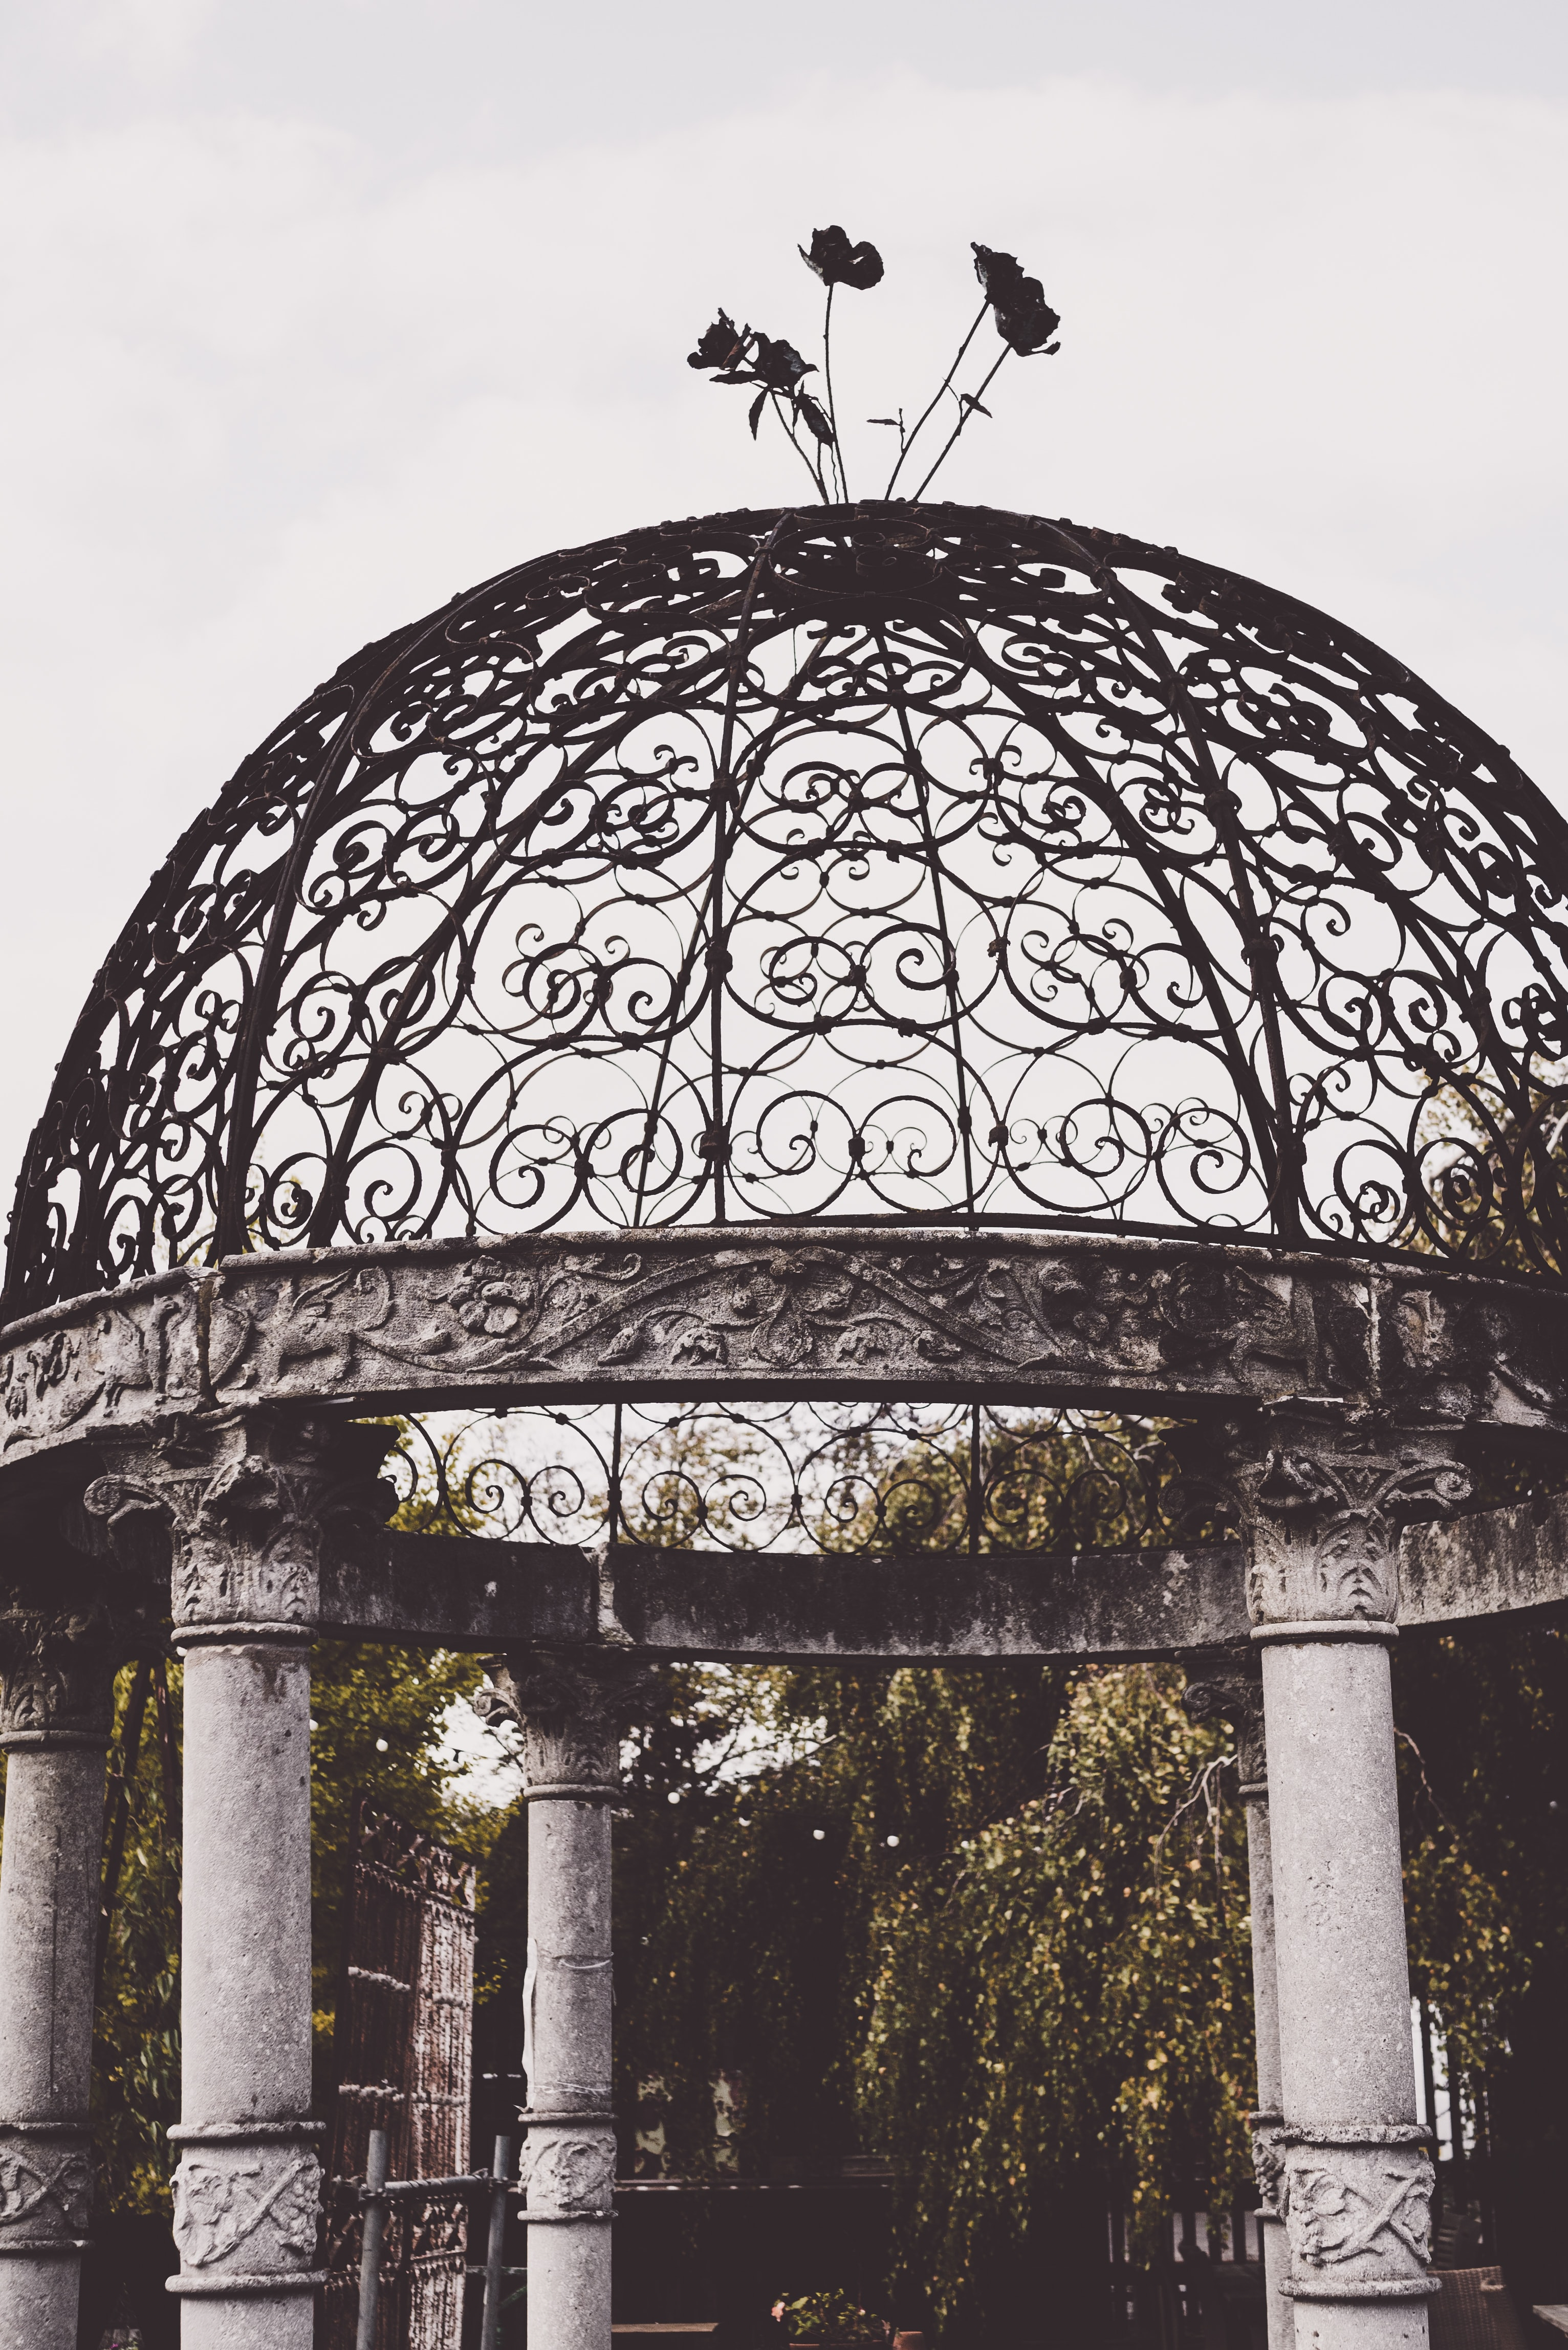 grayscale photography of dome top gazebo